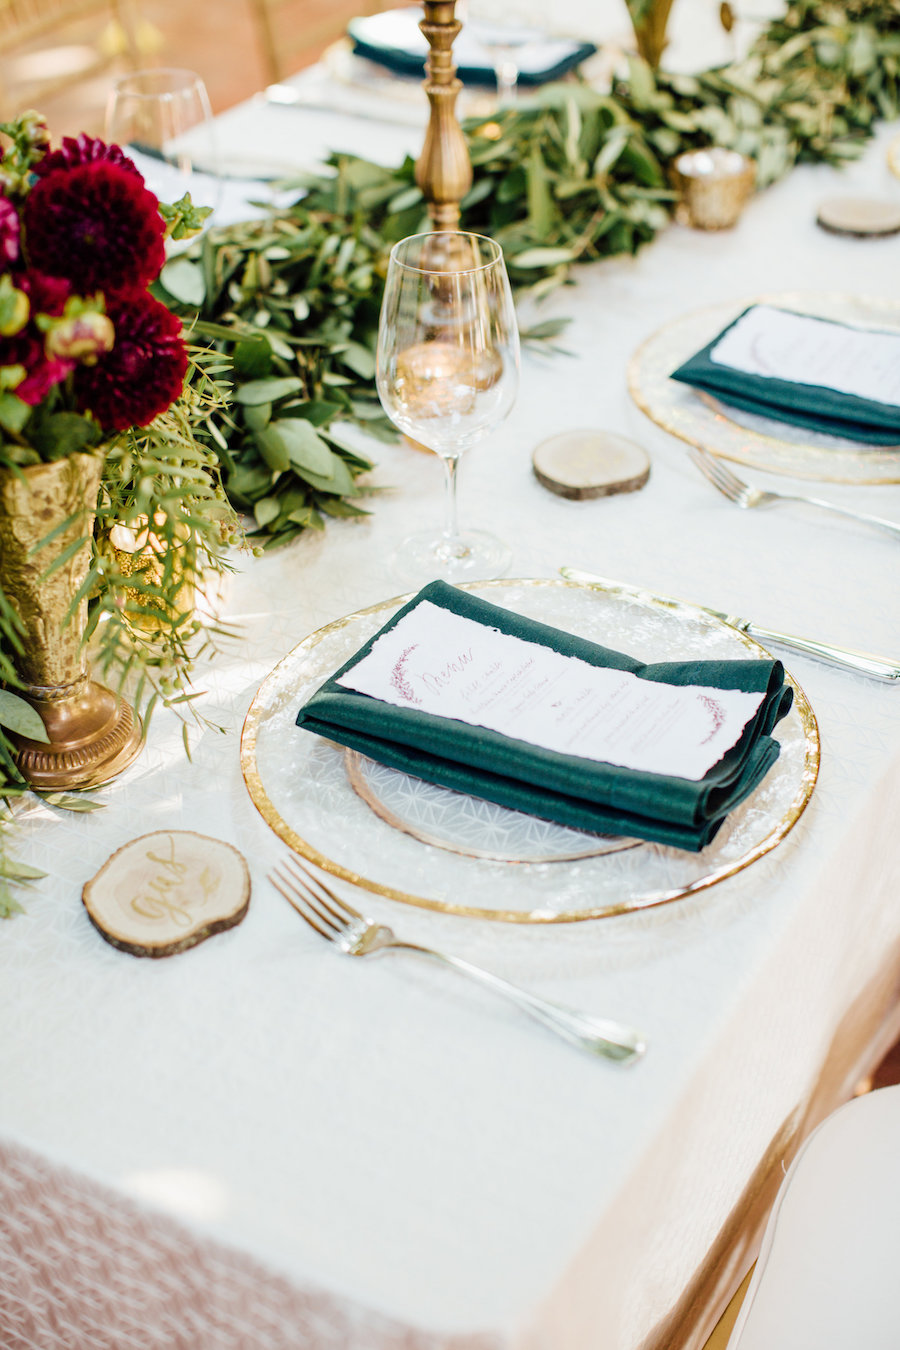 Chic Jewel-Toned Styled Shoot Featured on California Wedding Day4.jpg